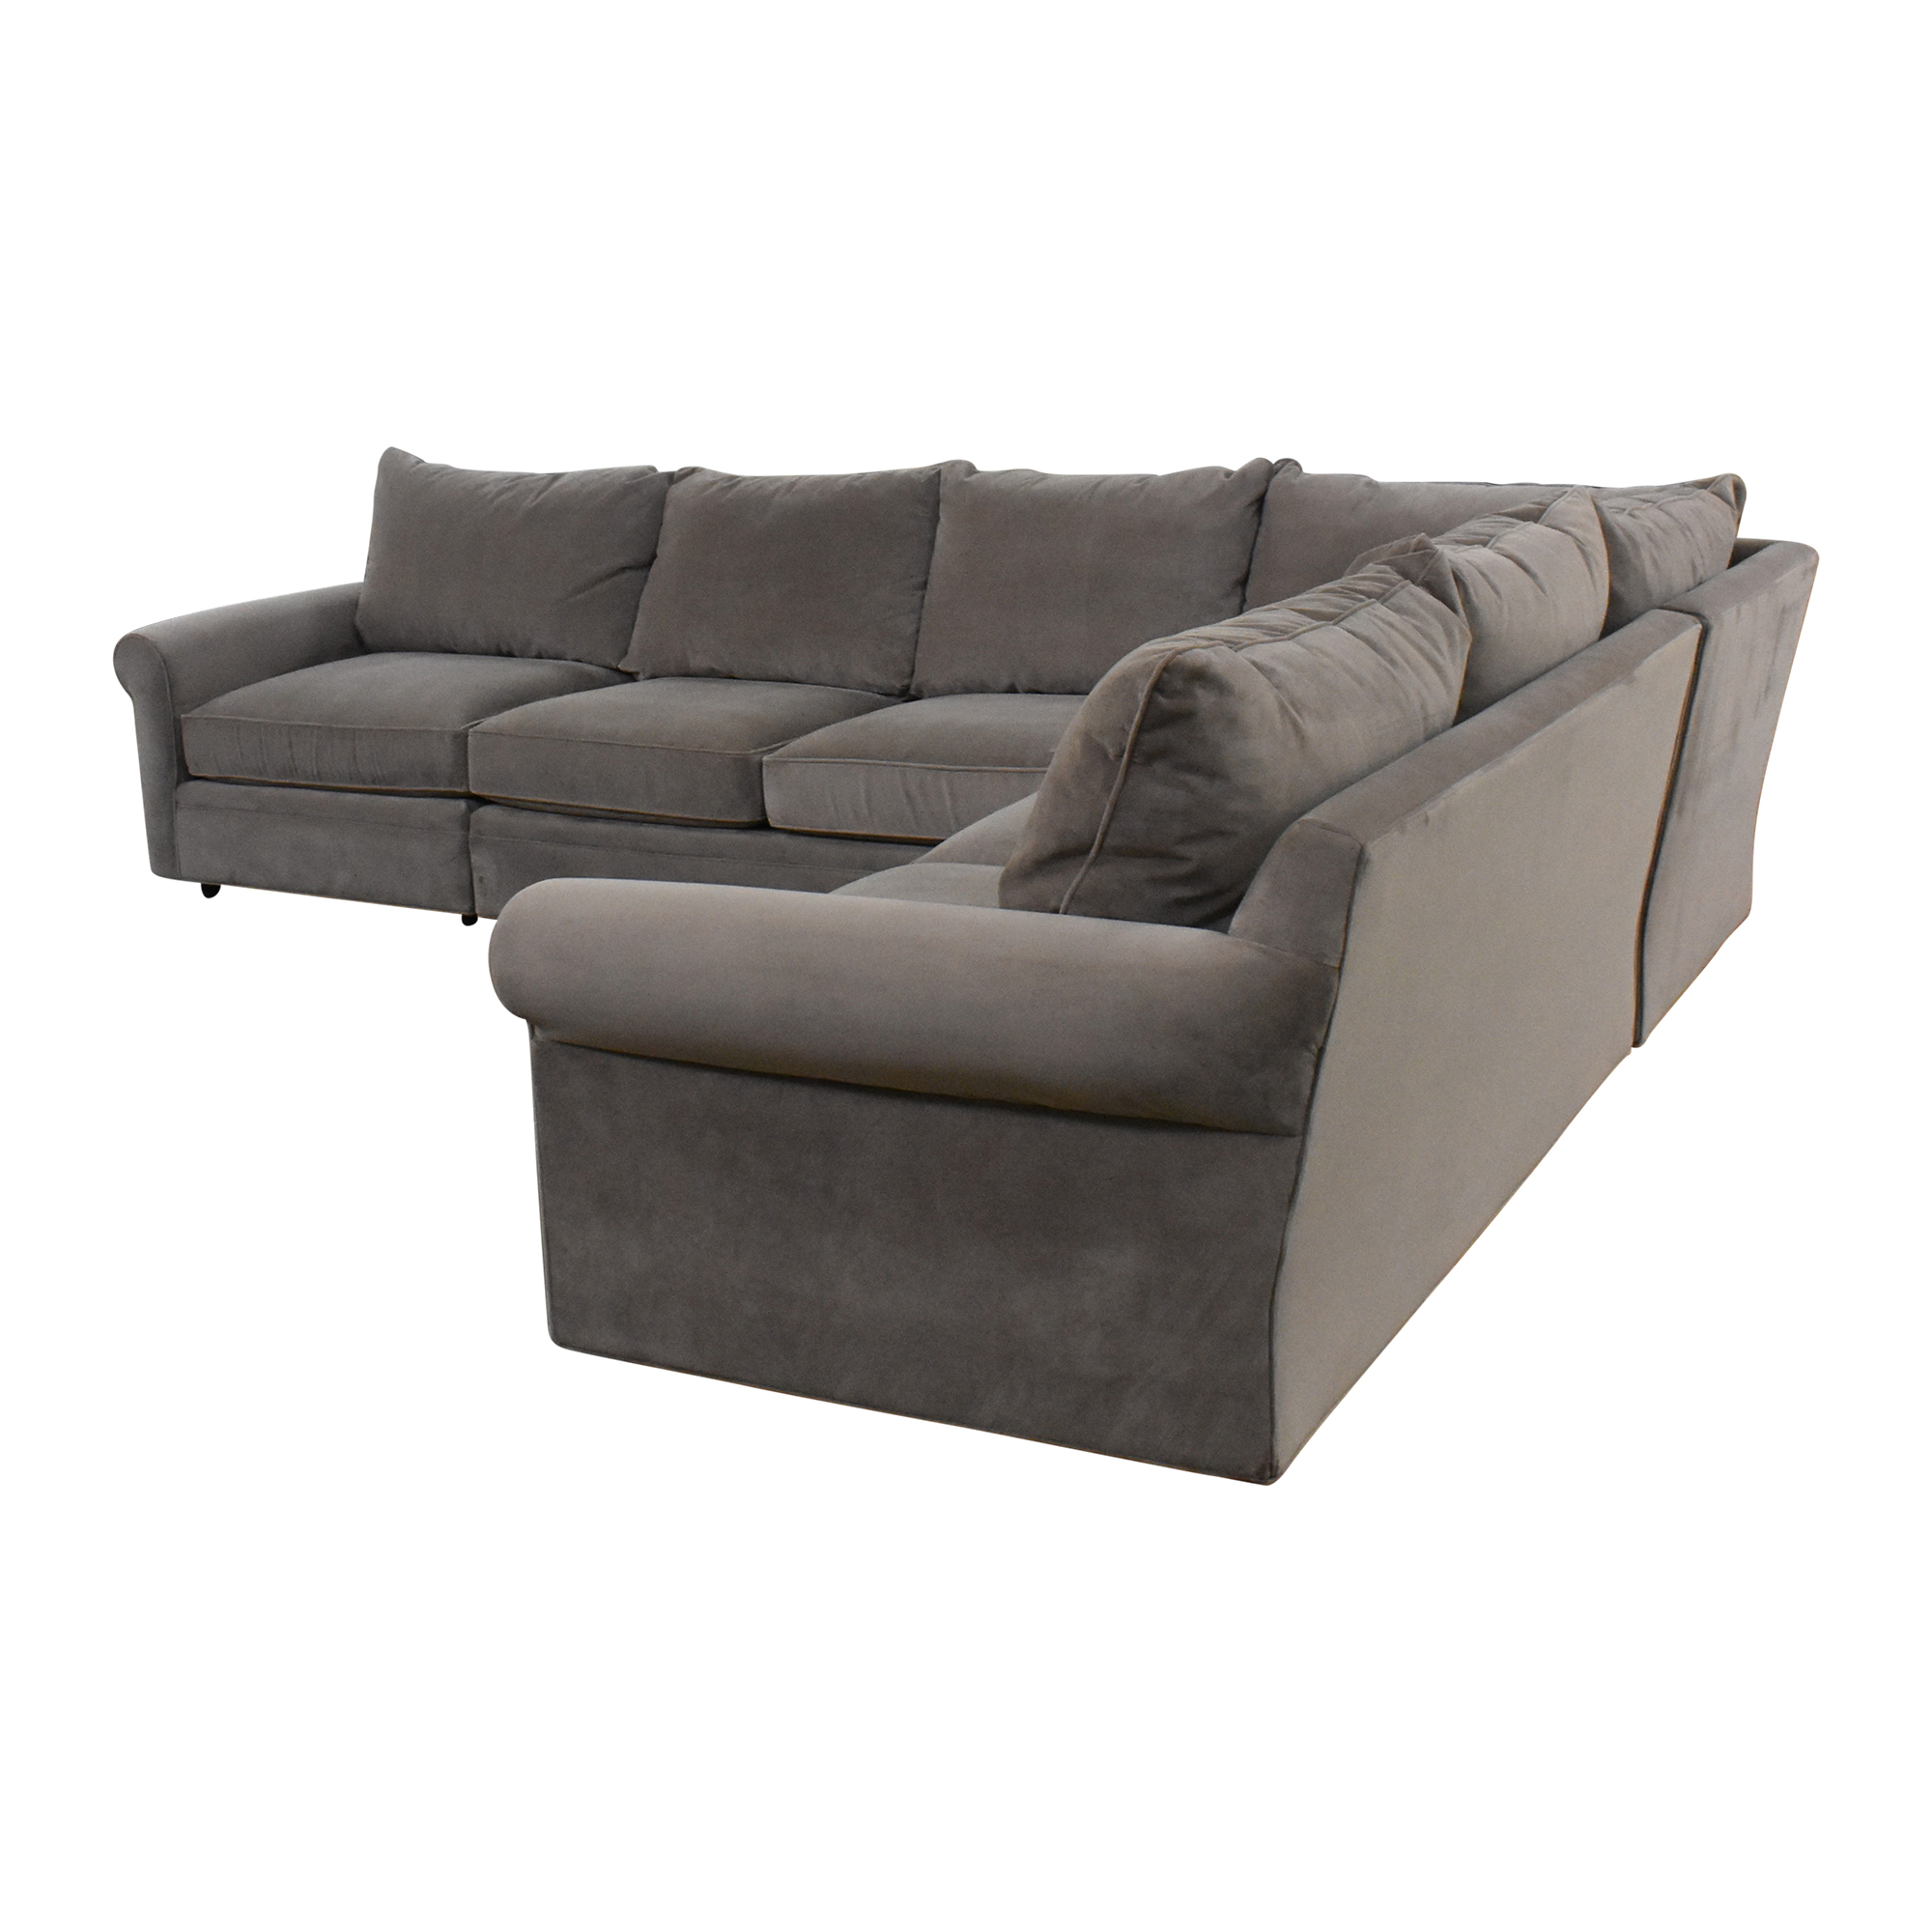 Macy's Macy's Modern Concepts L Shaped Sectional Sofa nyc